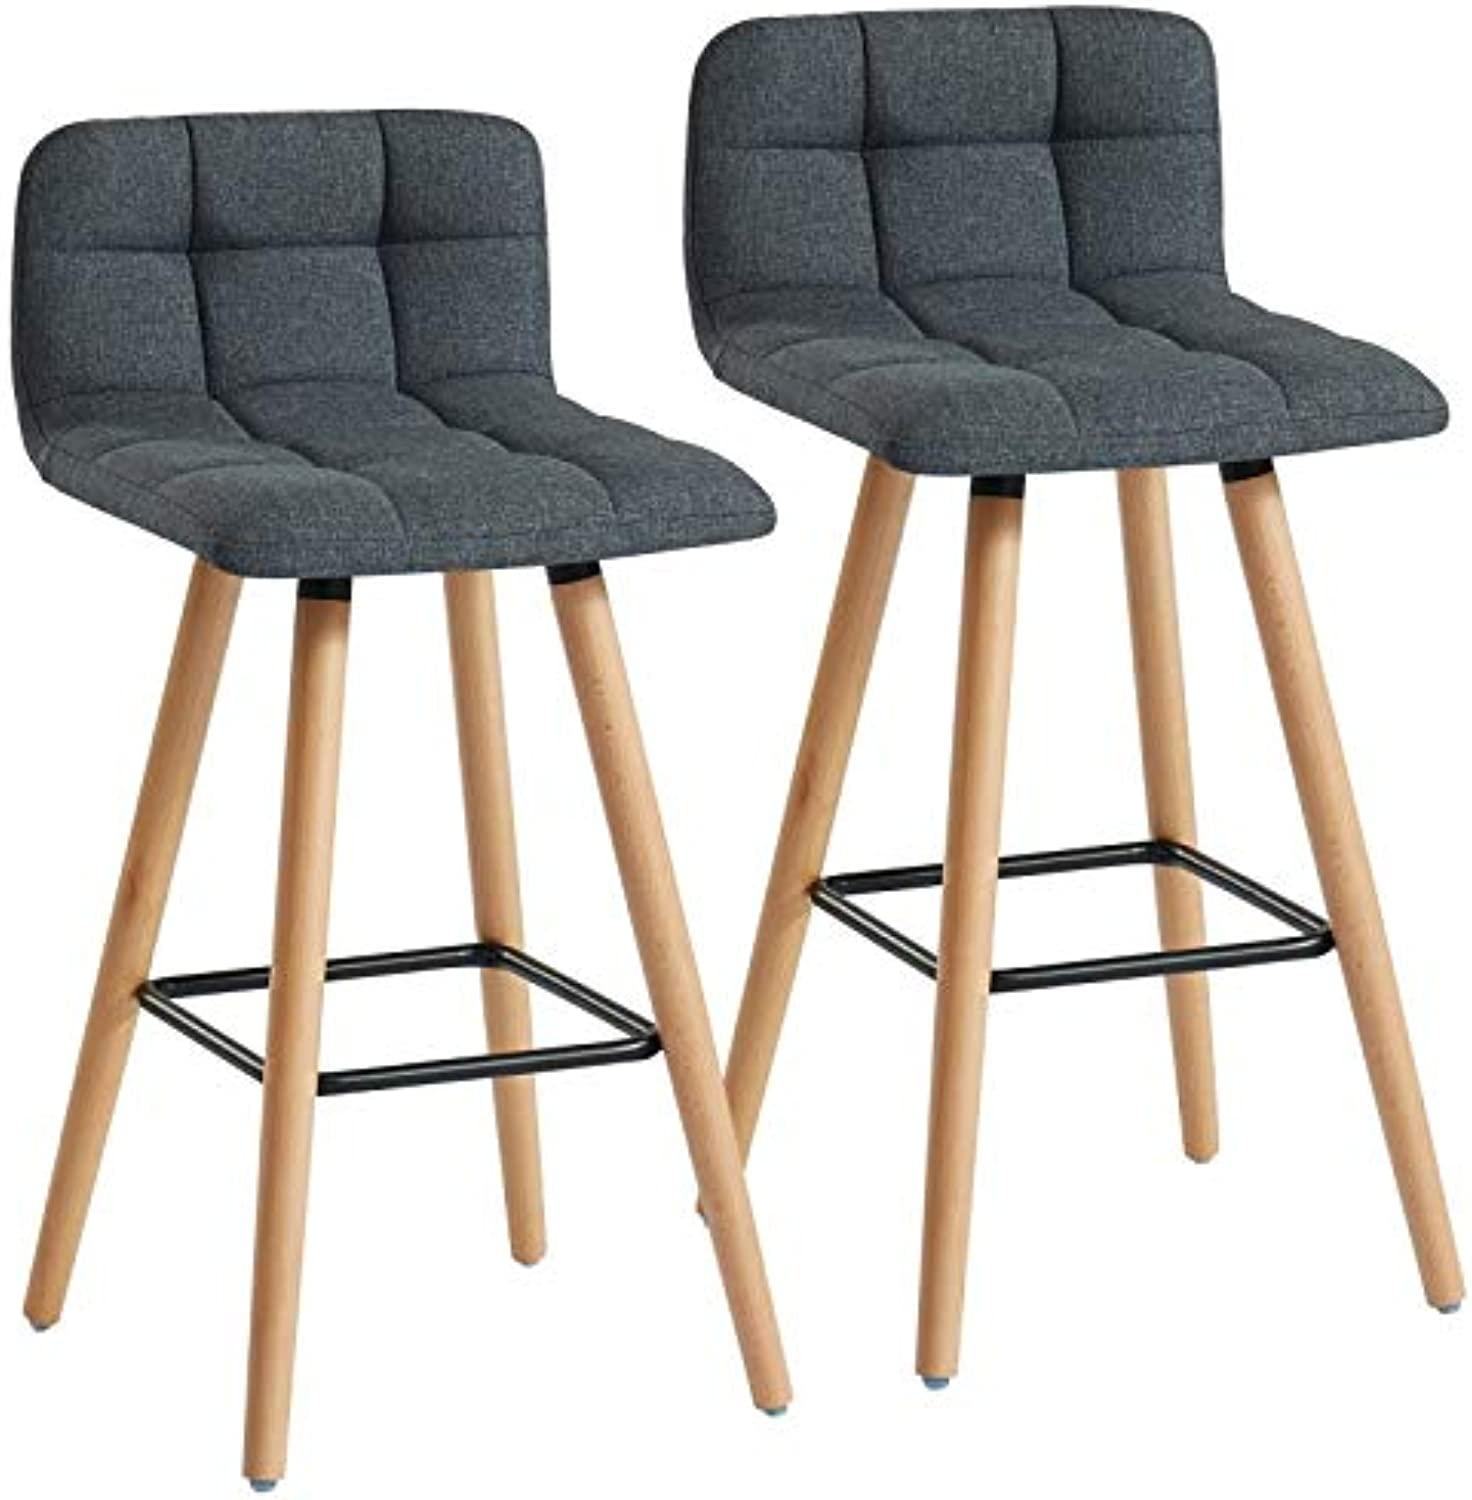 Misra Set of 2 Mid-Century Fabric & Solid Wood 26'' Counter Stool in Charcoal